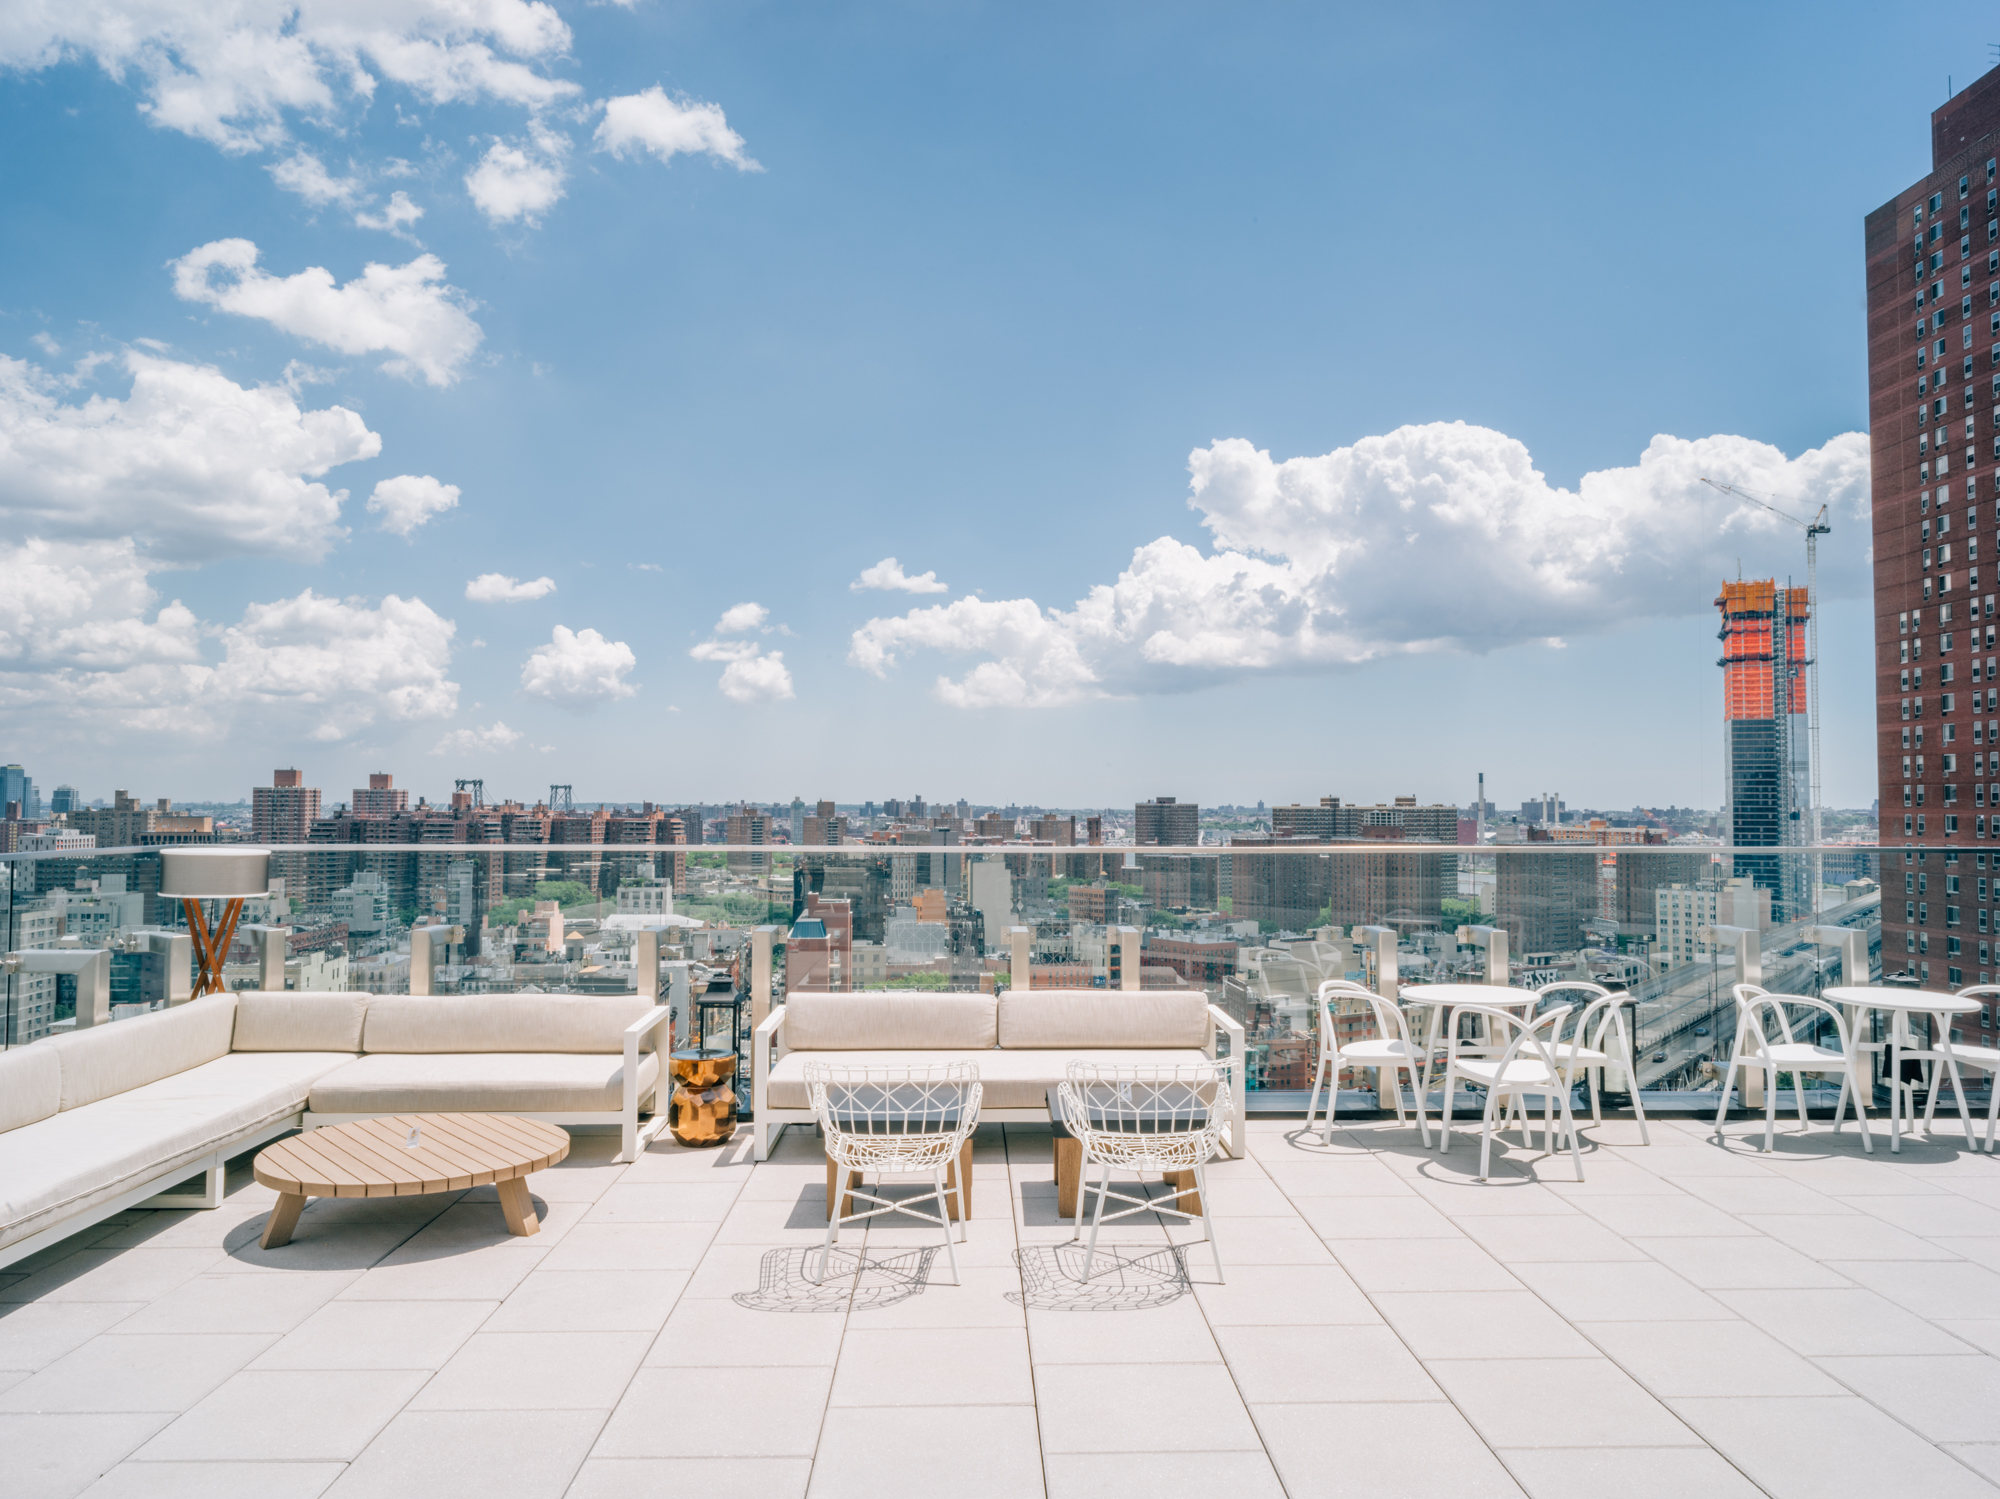 The-Crown-Hotel-50-Bowery-All-Good-NYC-Location-Photography-3.jpg